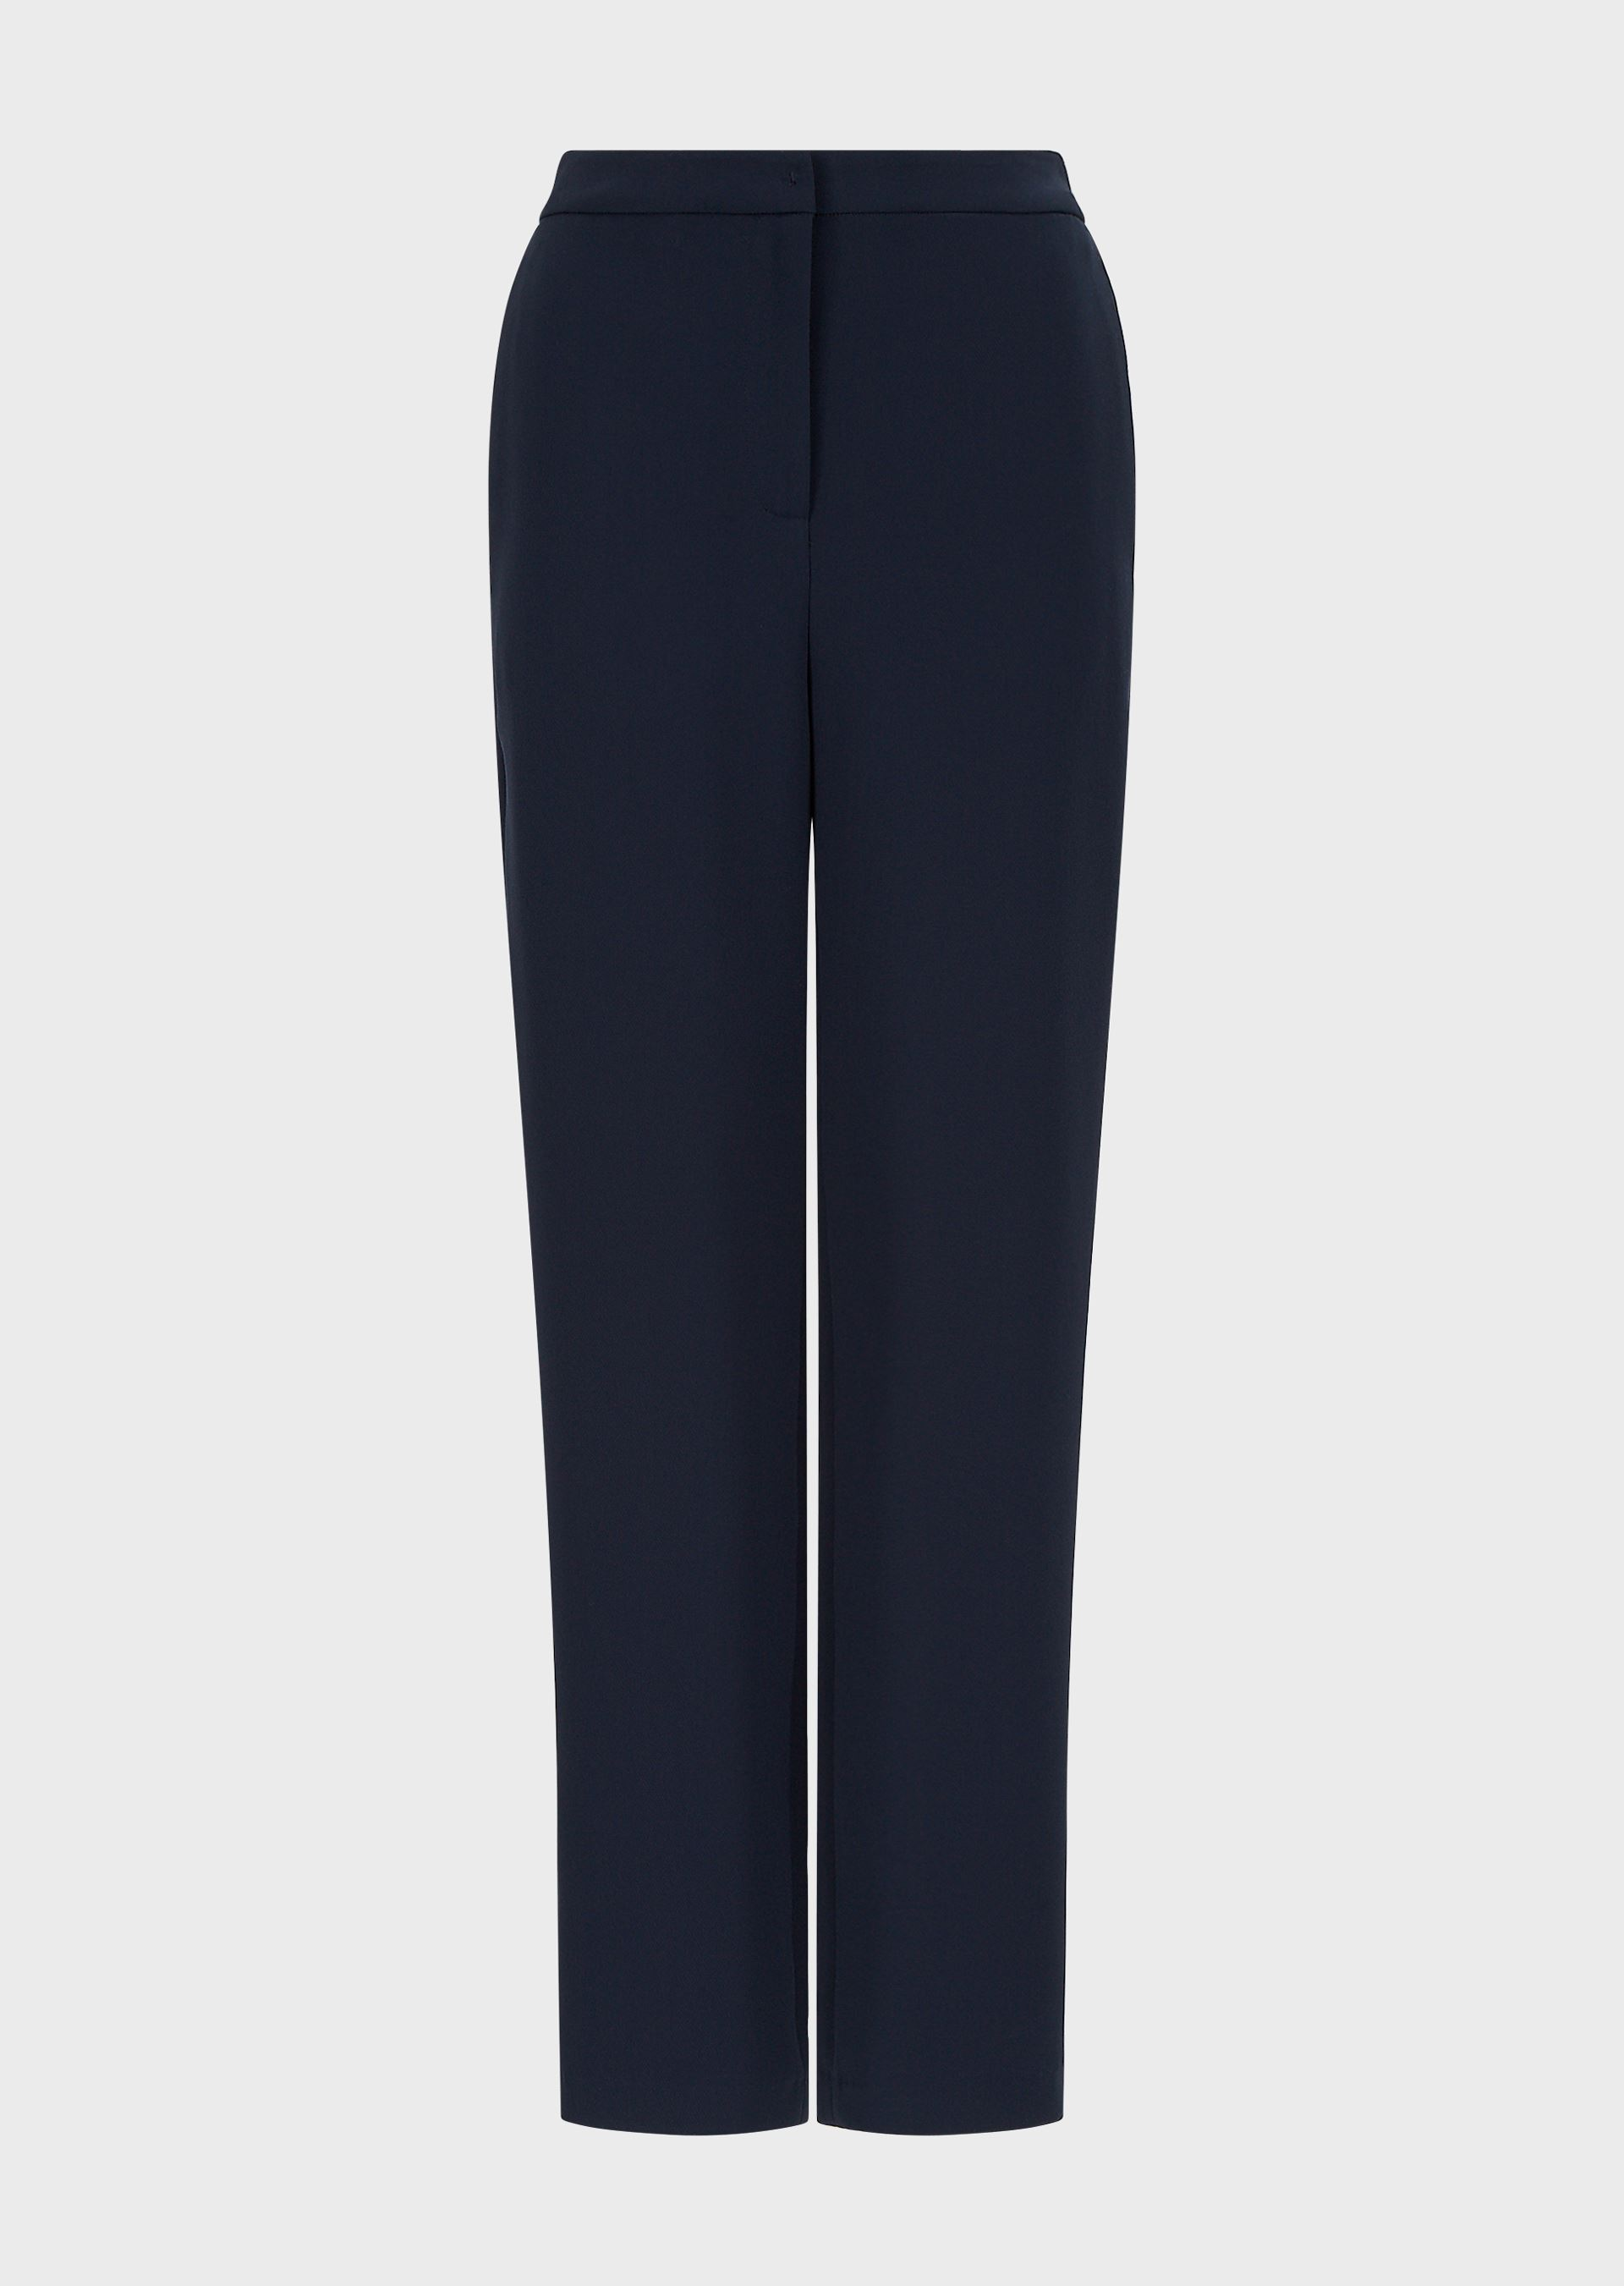 EMPORIO ARMANI Technical crêpe trousers with elasticated detail